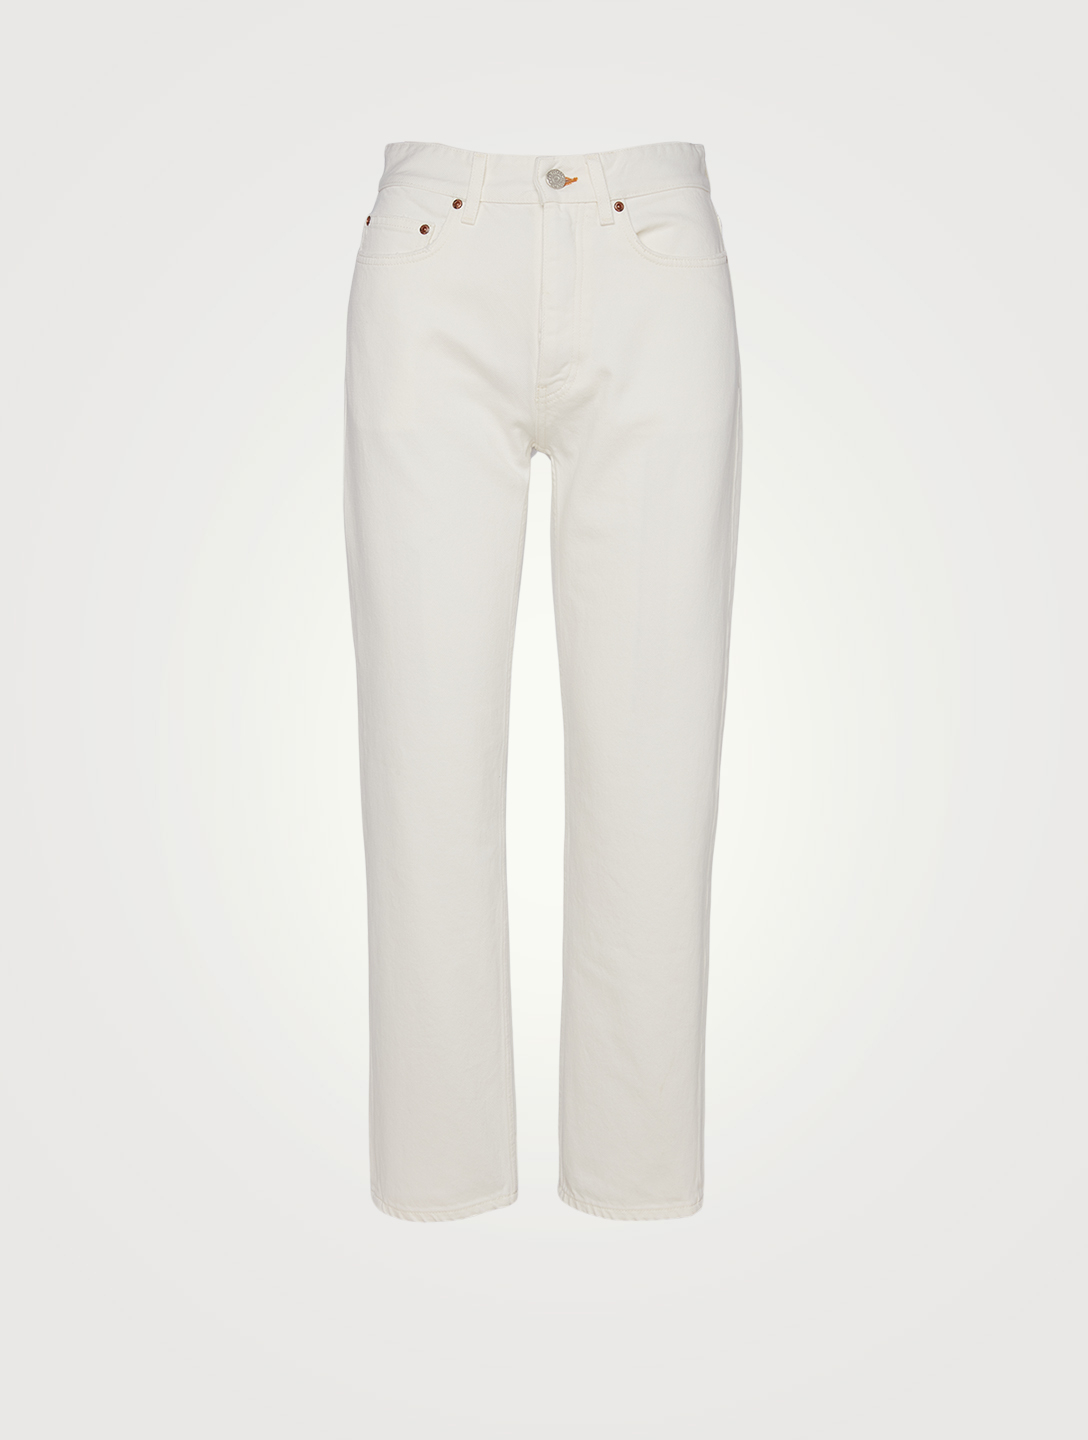 WON HUNDRED Pearl Organic Cotton High-Waisted Jeans Women's White